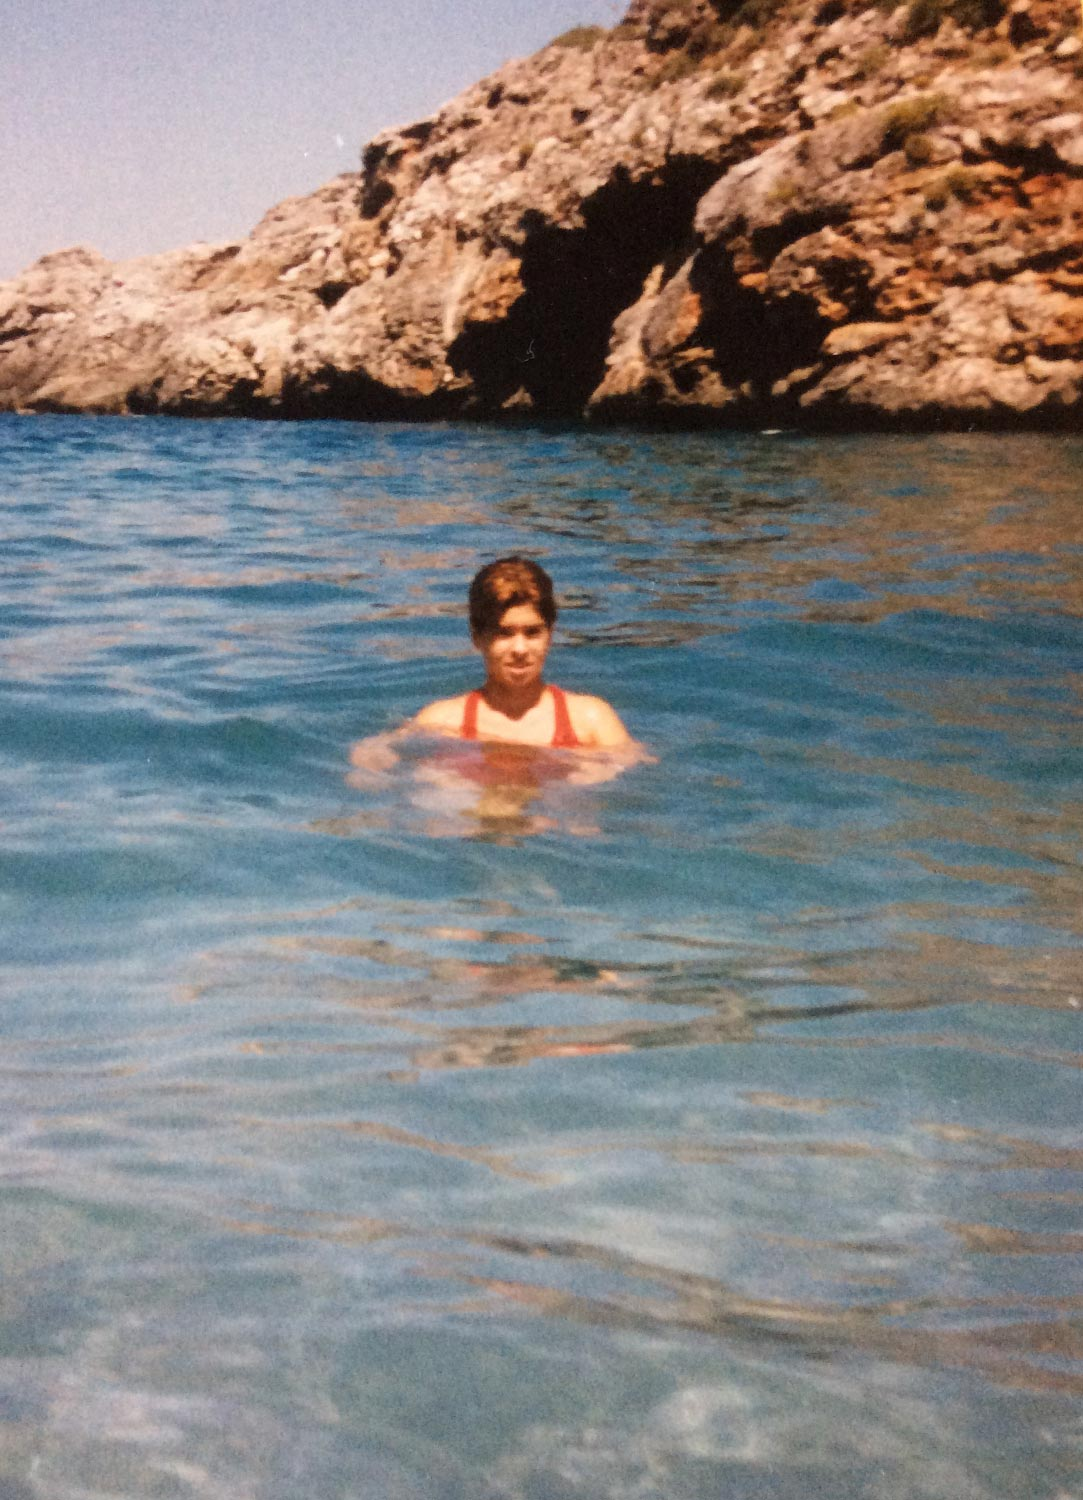 Teenage Lina Misitzis in the ocean